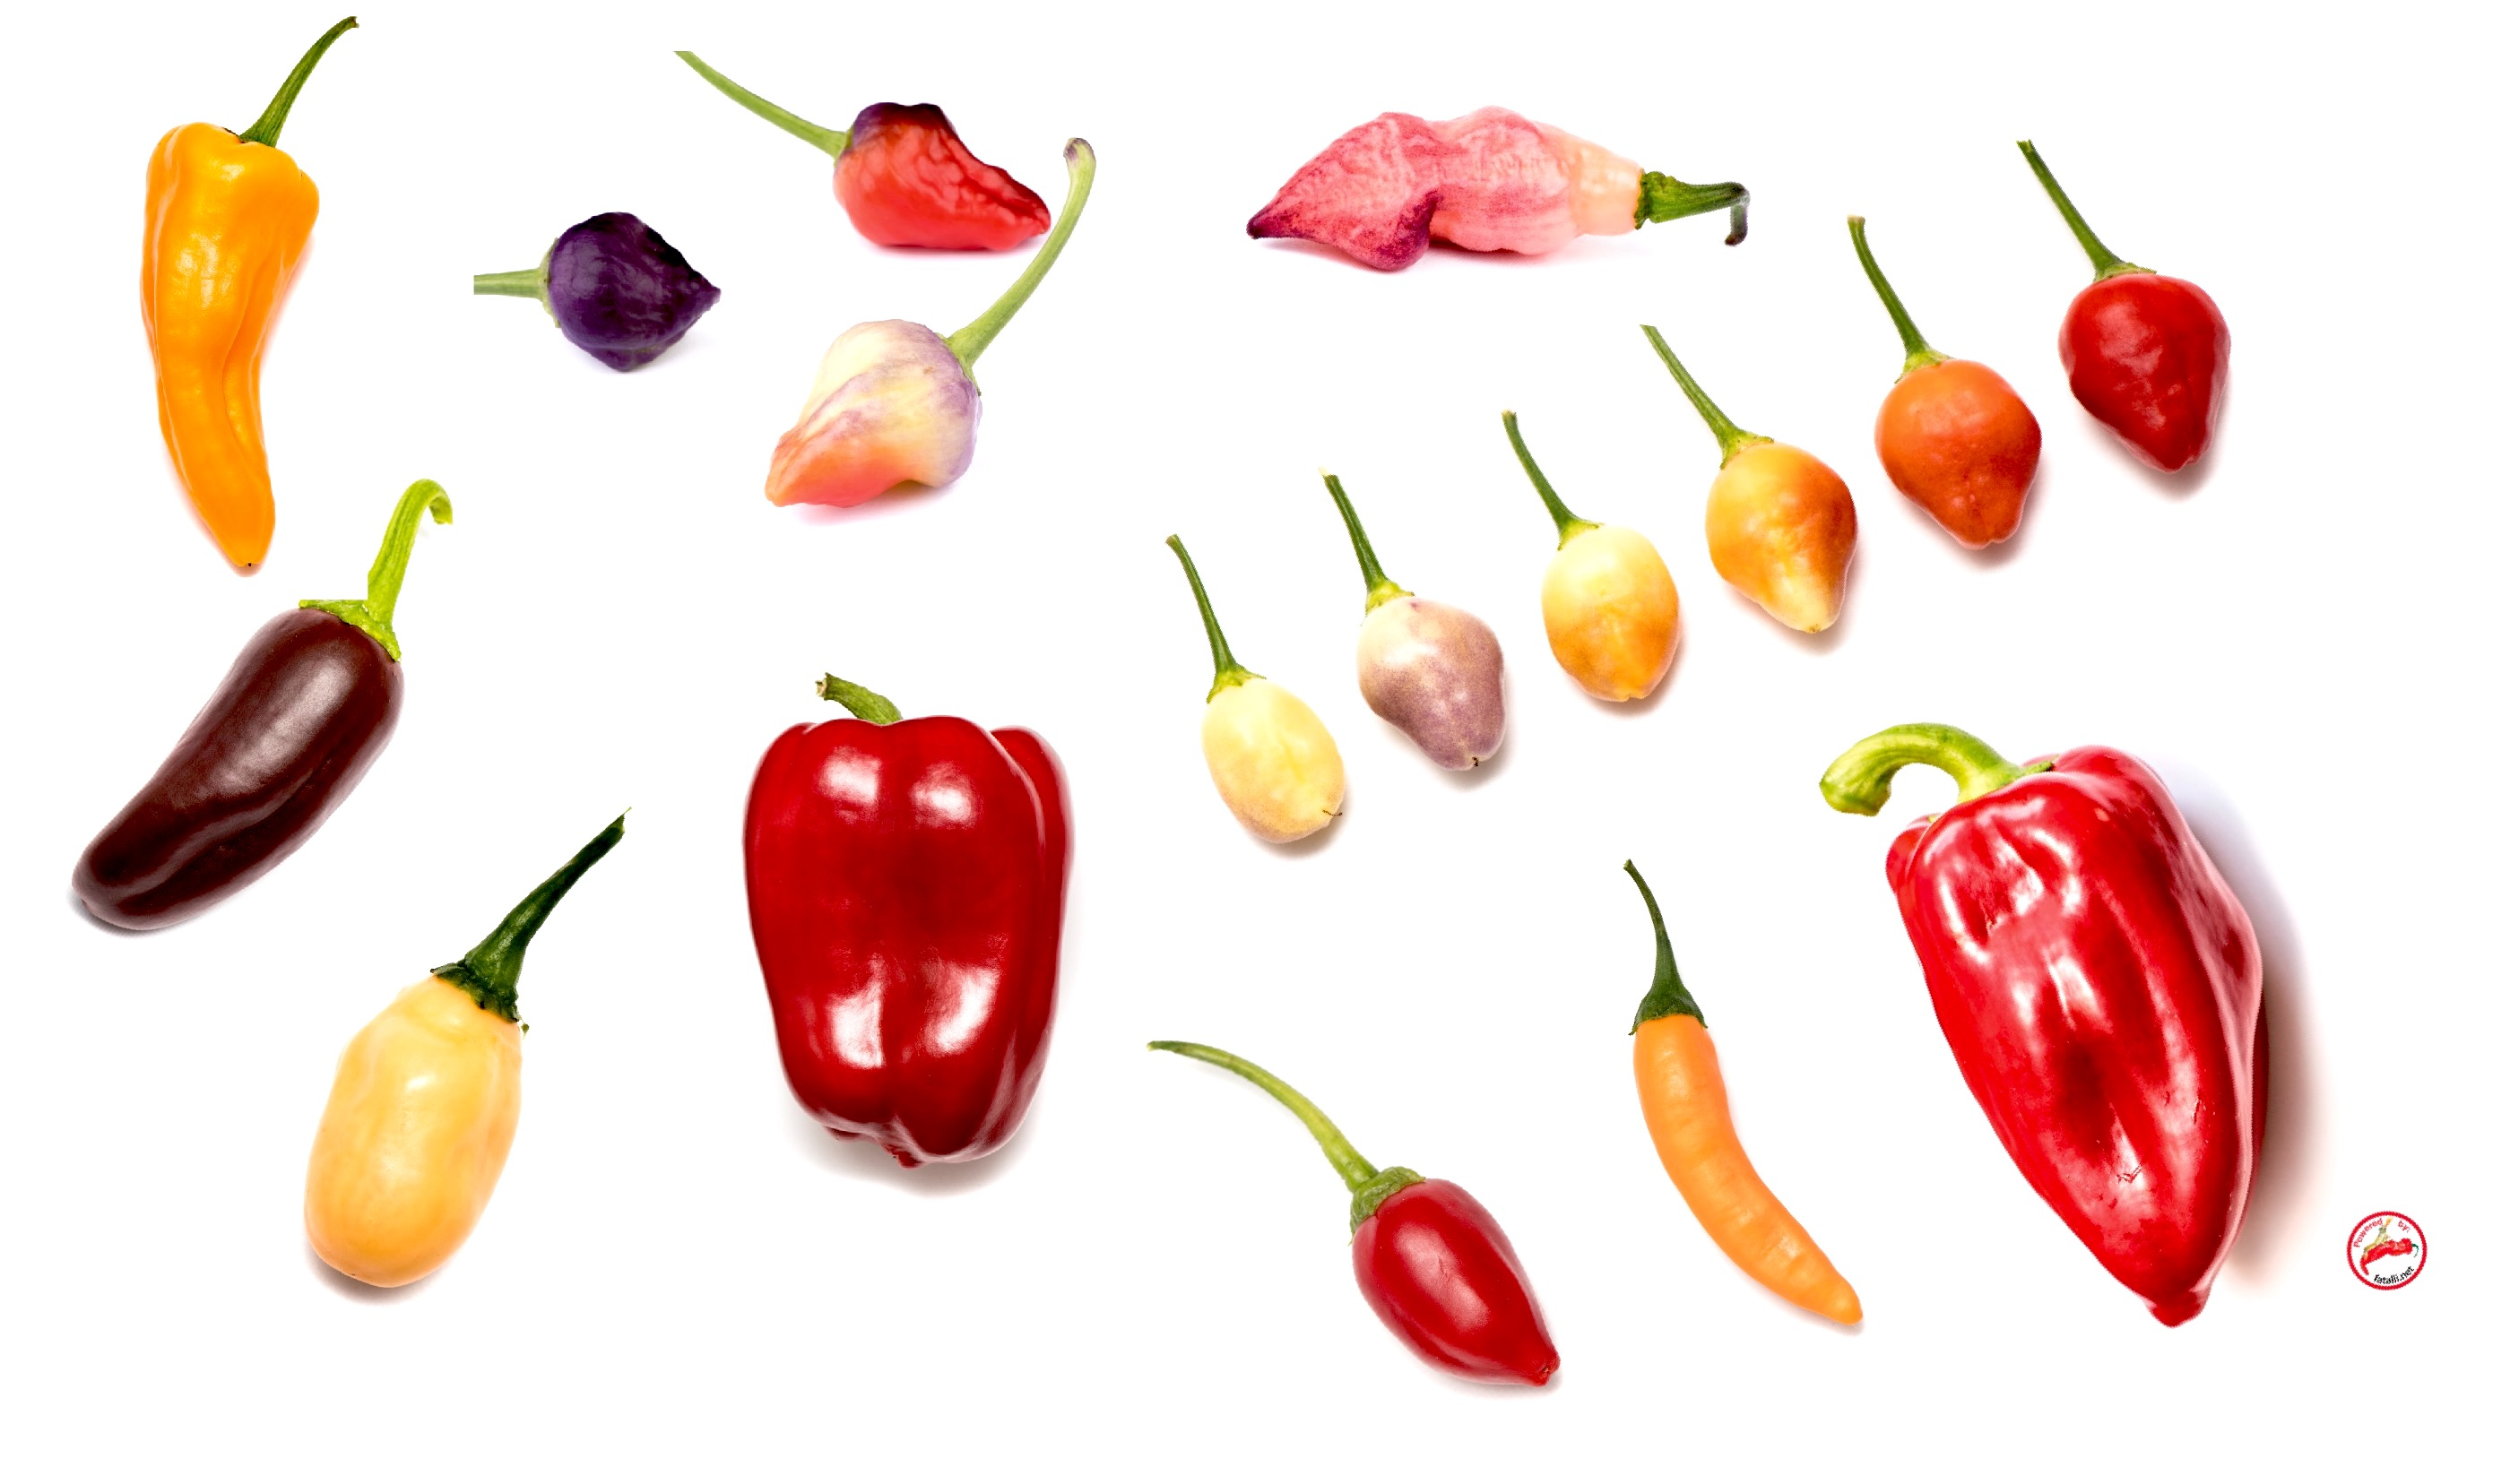 Fatalii's Recommended Favorites!